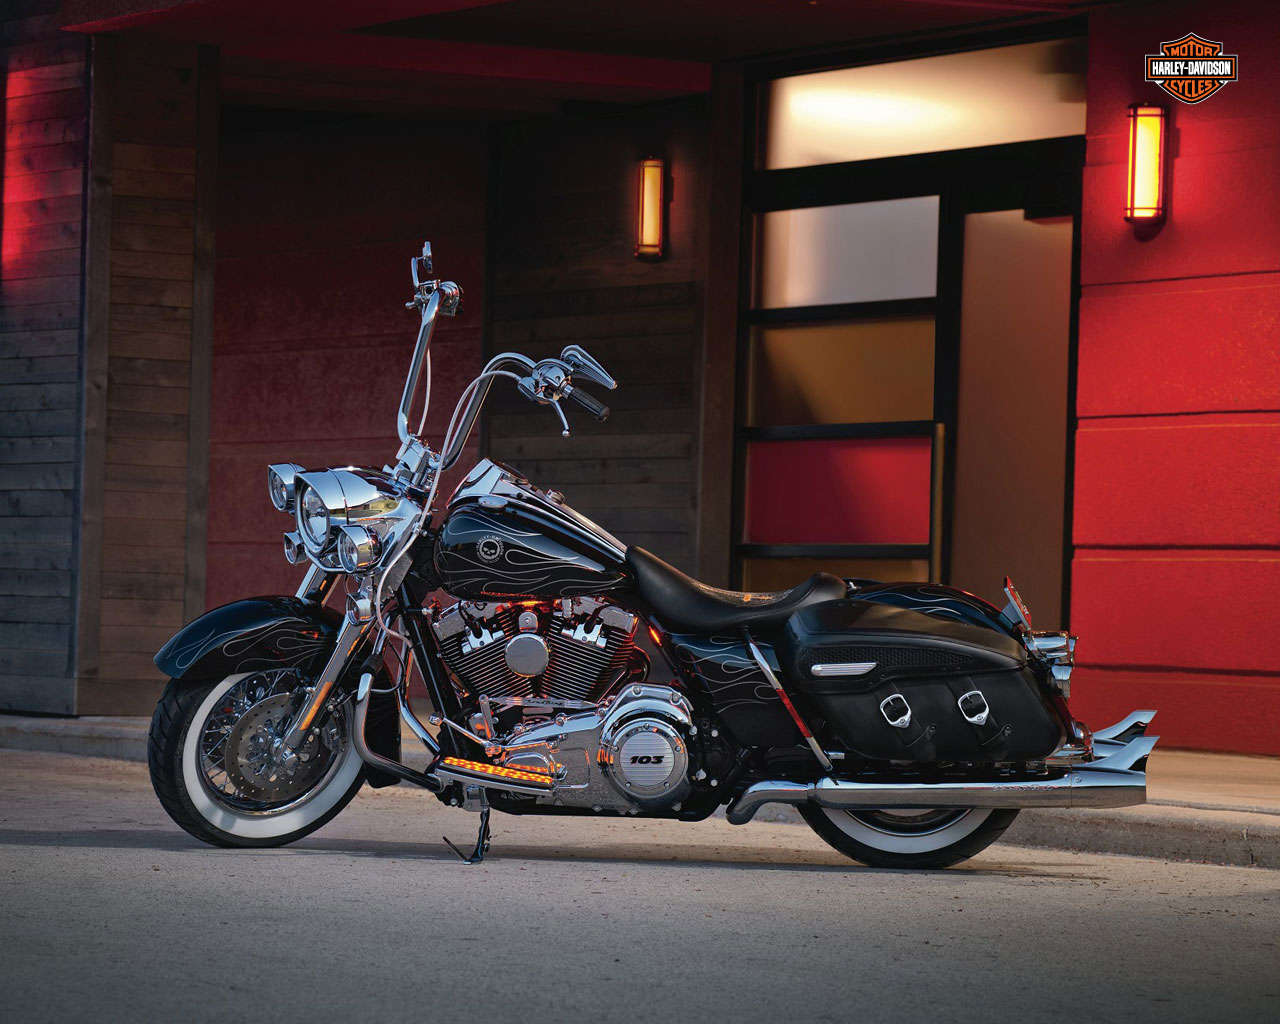 2012 Harley-Davidson FLHRC Road King Classic Review